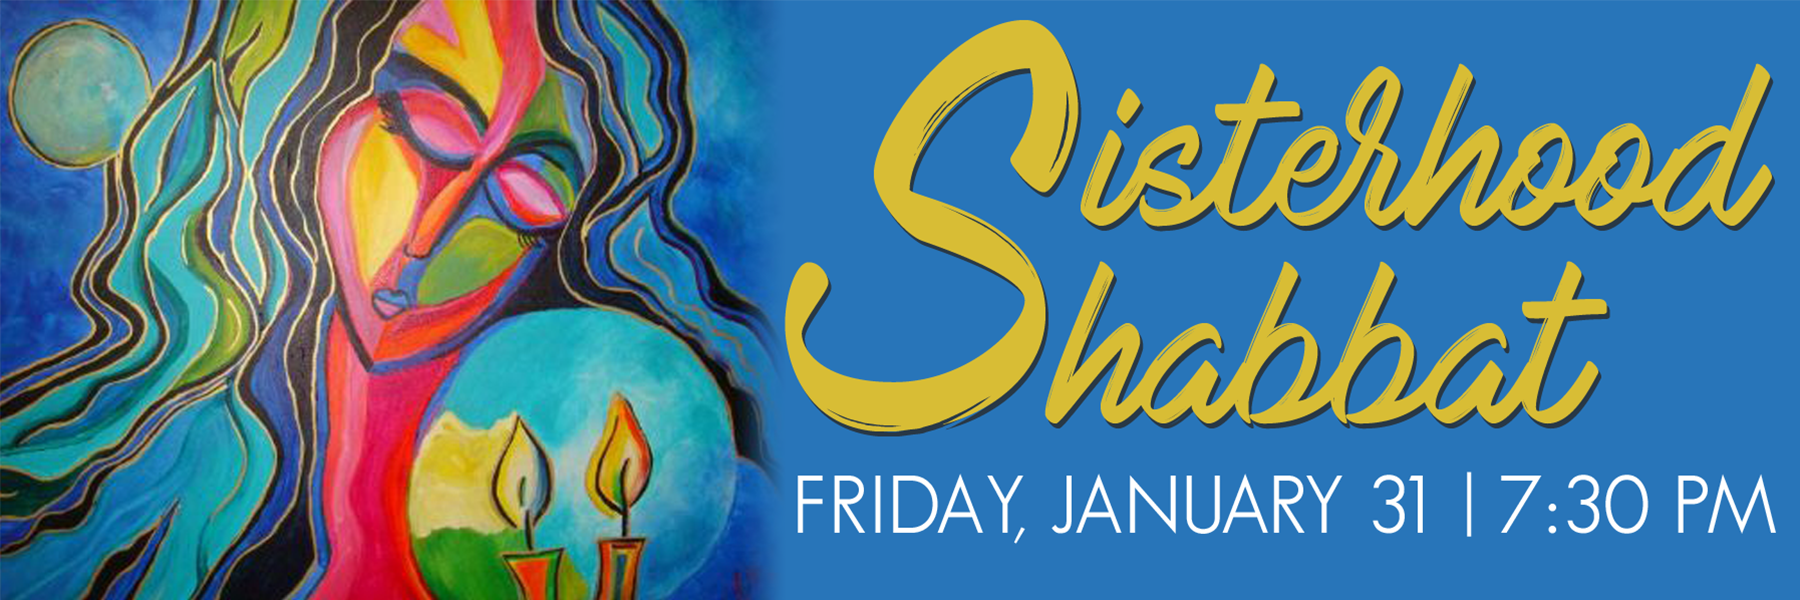 """<span class=""""slider_title"""">                                     Join Us for Sisterhood Shabbat                                </span>                                                                                                                                                                                       <span class=""""slider_description"""">All are invited to join us for our annual lay-led Sisterhood Shabbat service. Special readings and music by women will be incorporated into the service, and we'll honor many of the women who help make Barnert such a special and unique community.  Please join us!</span>"""